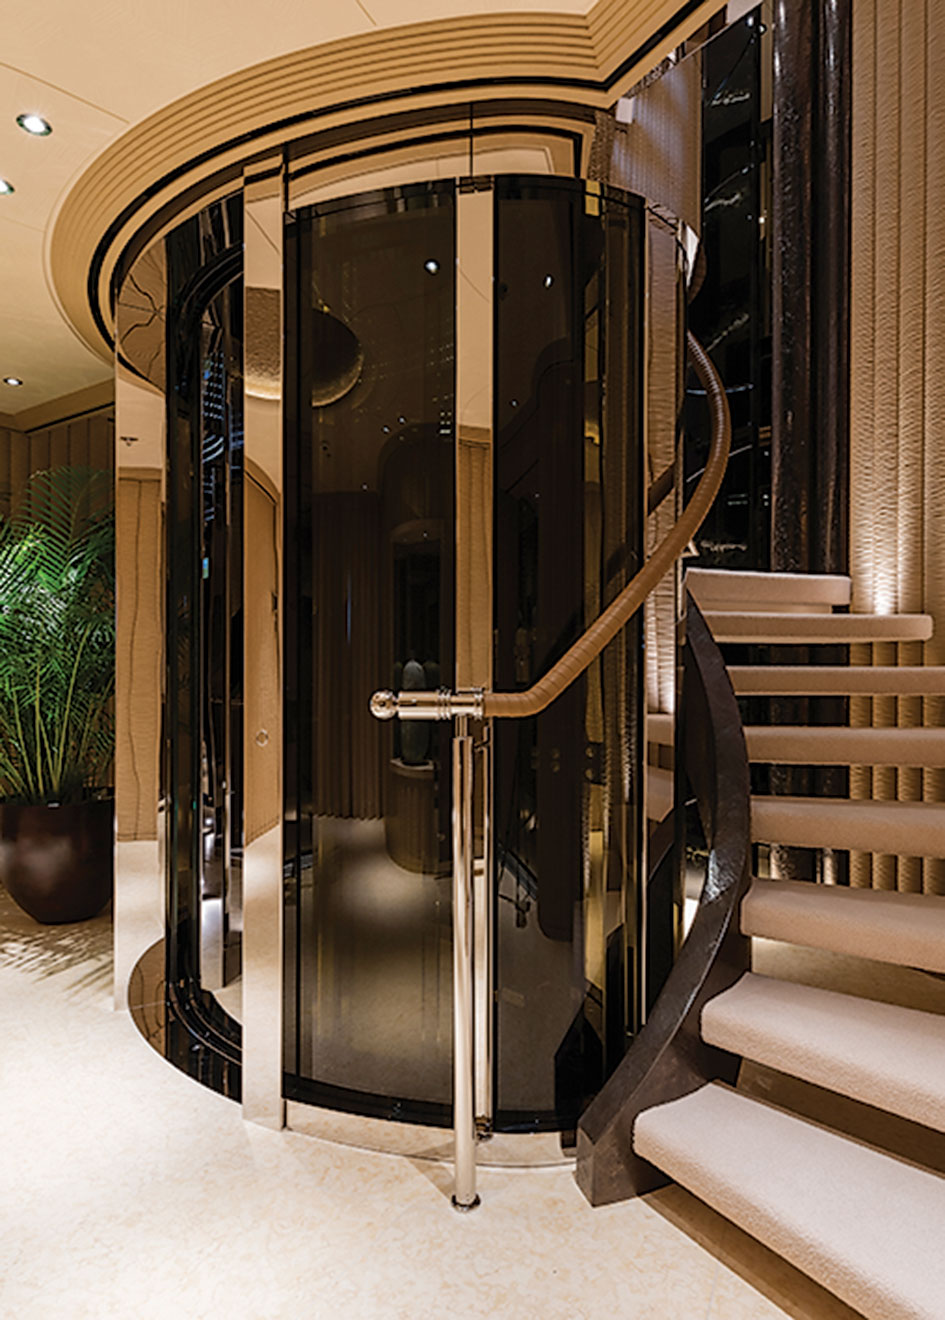 the-layout-on-abeking-and-rasmussen-super-yacht-romea-centres-around-this-stainless-steel-clad-elevator